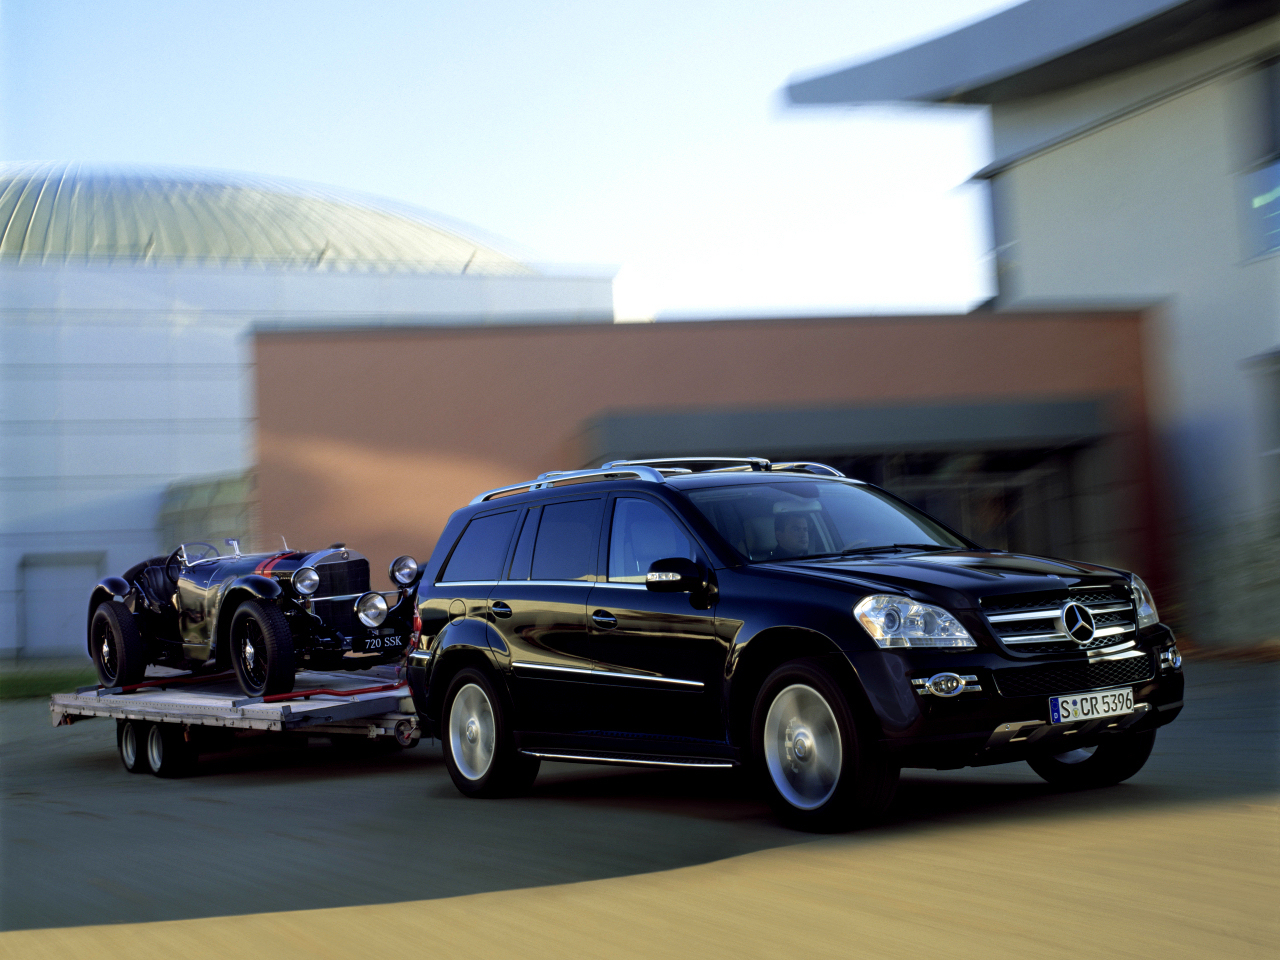 wallpaper 1024x960: Mercedes-Benz GL-class with trailer and a classic car